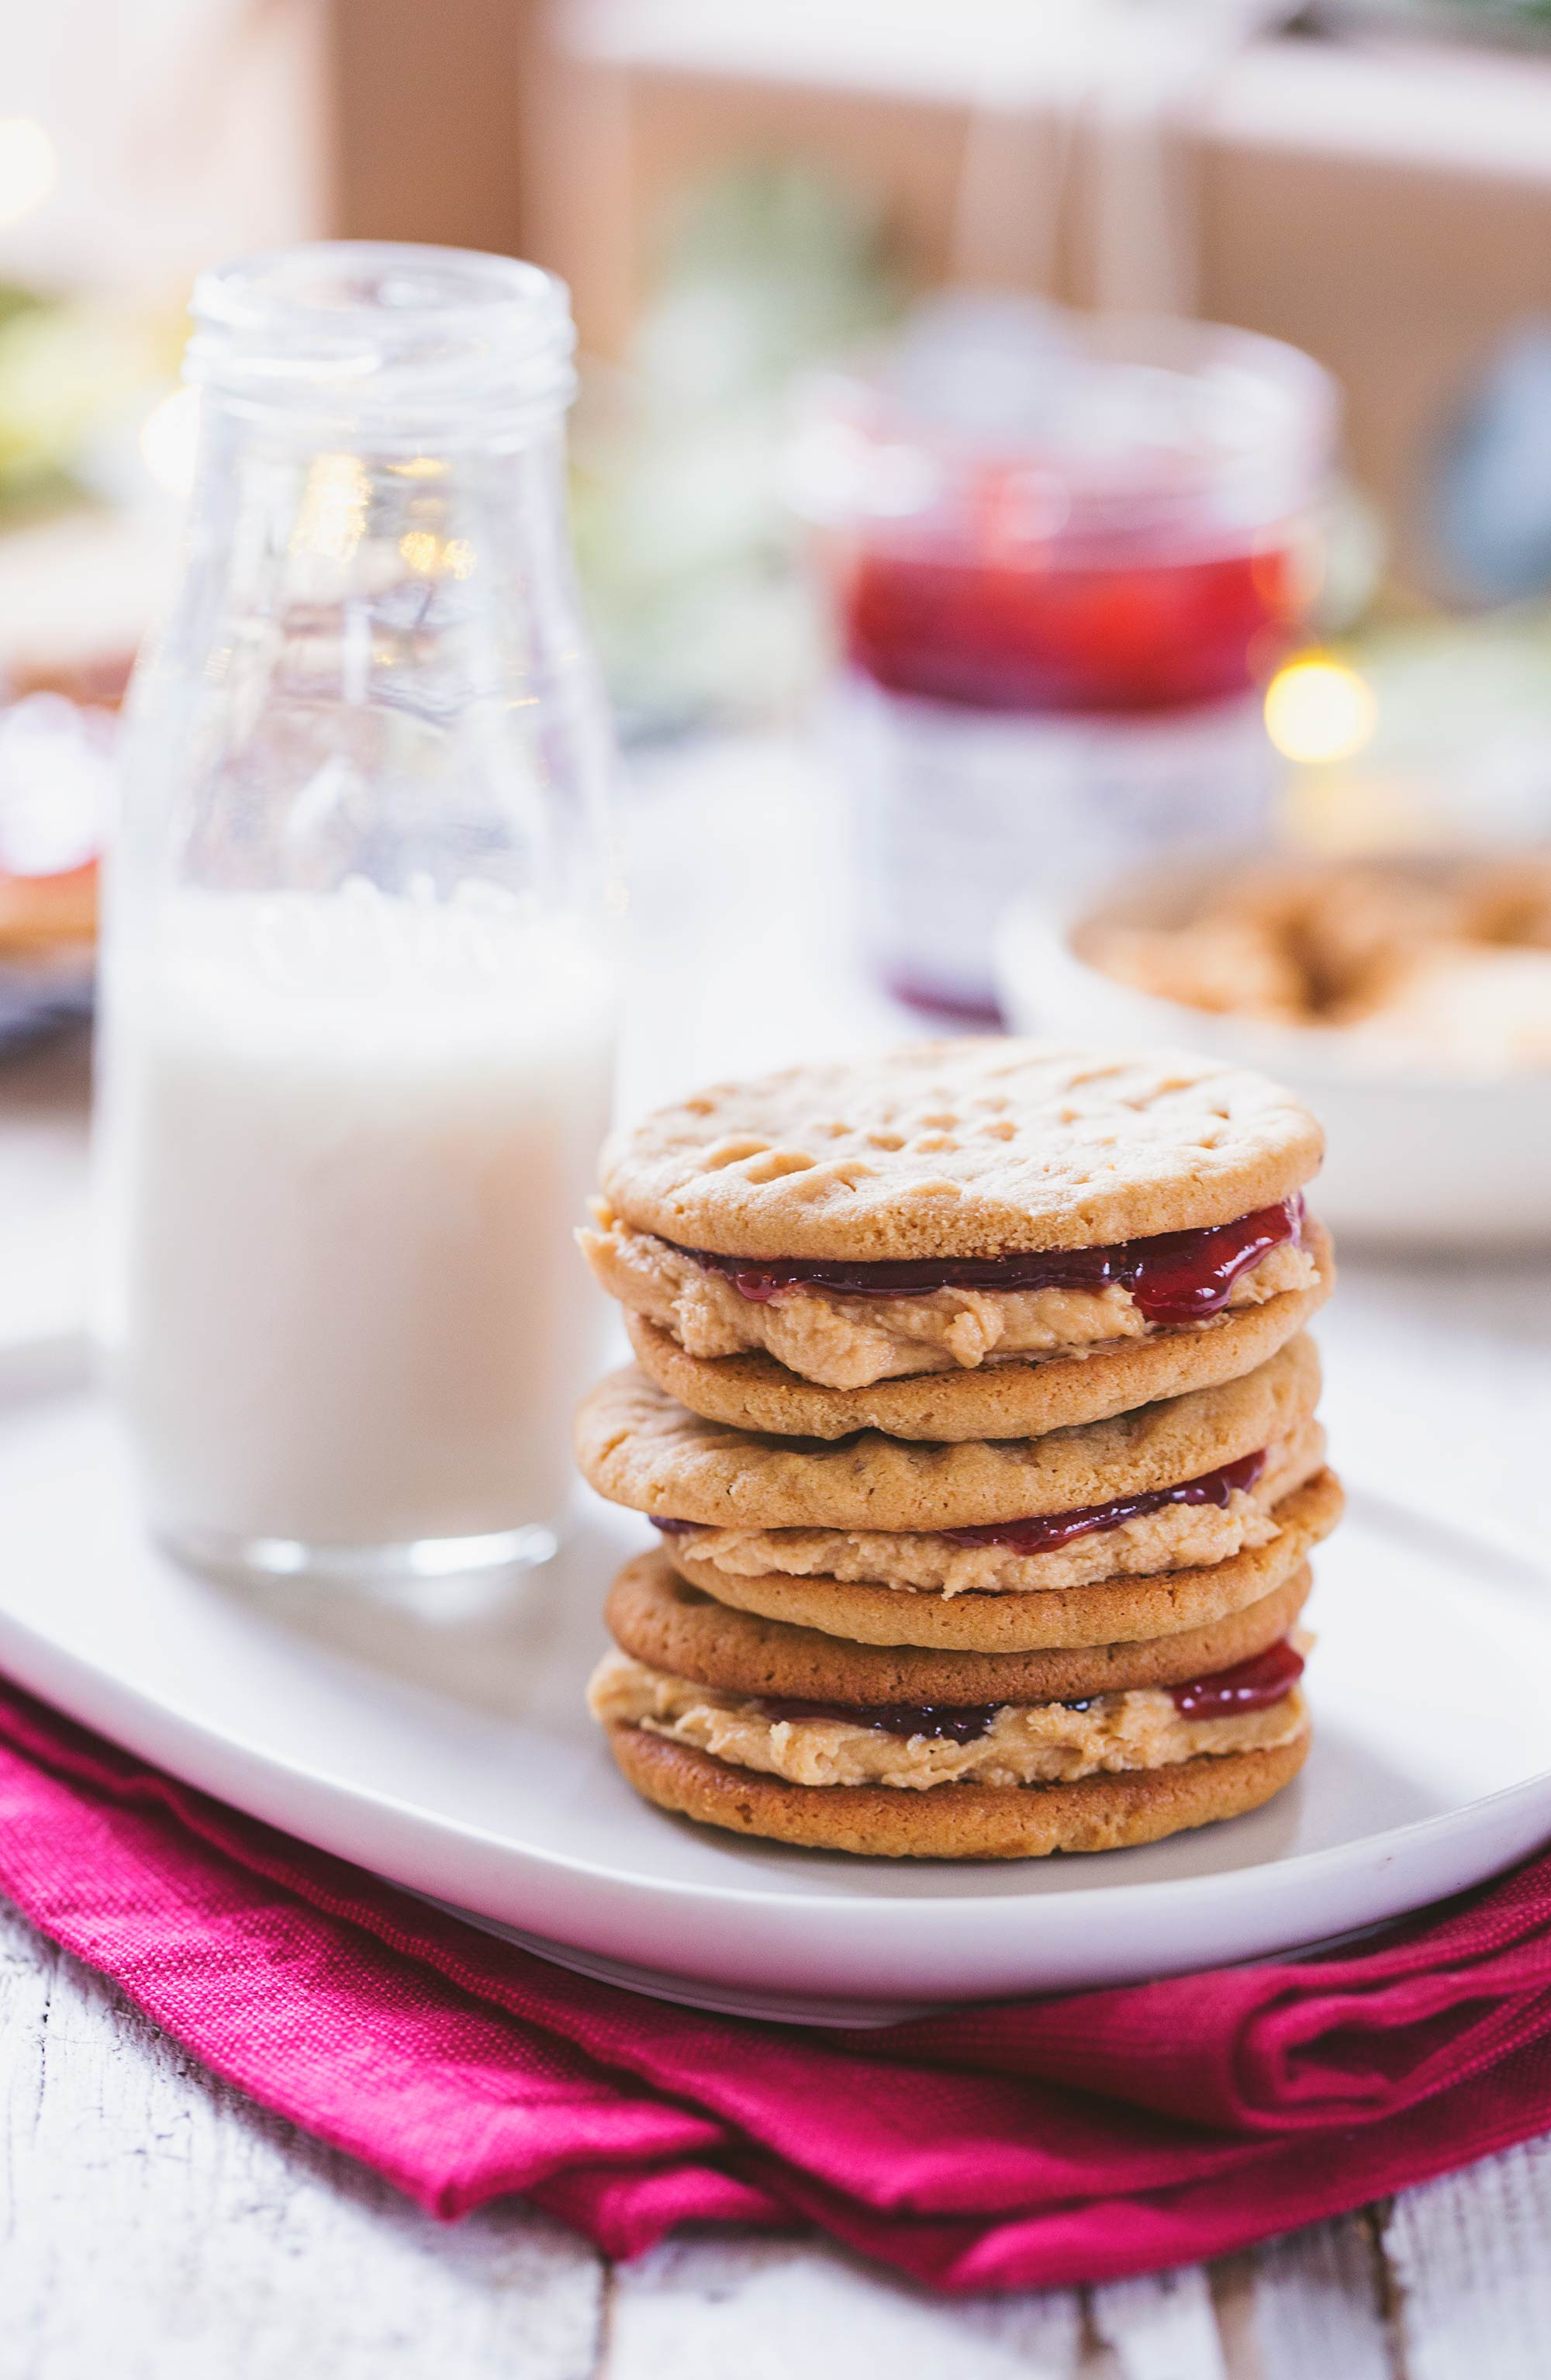 Peanut Butter & Bonne Maman Jelly Filled Cookies